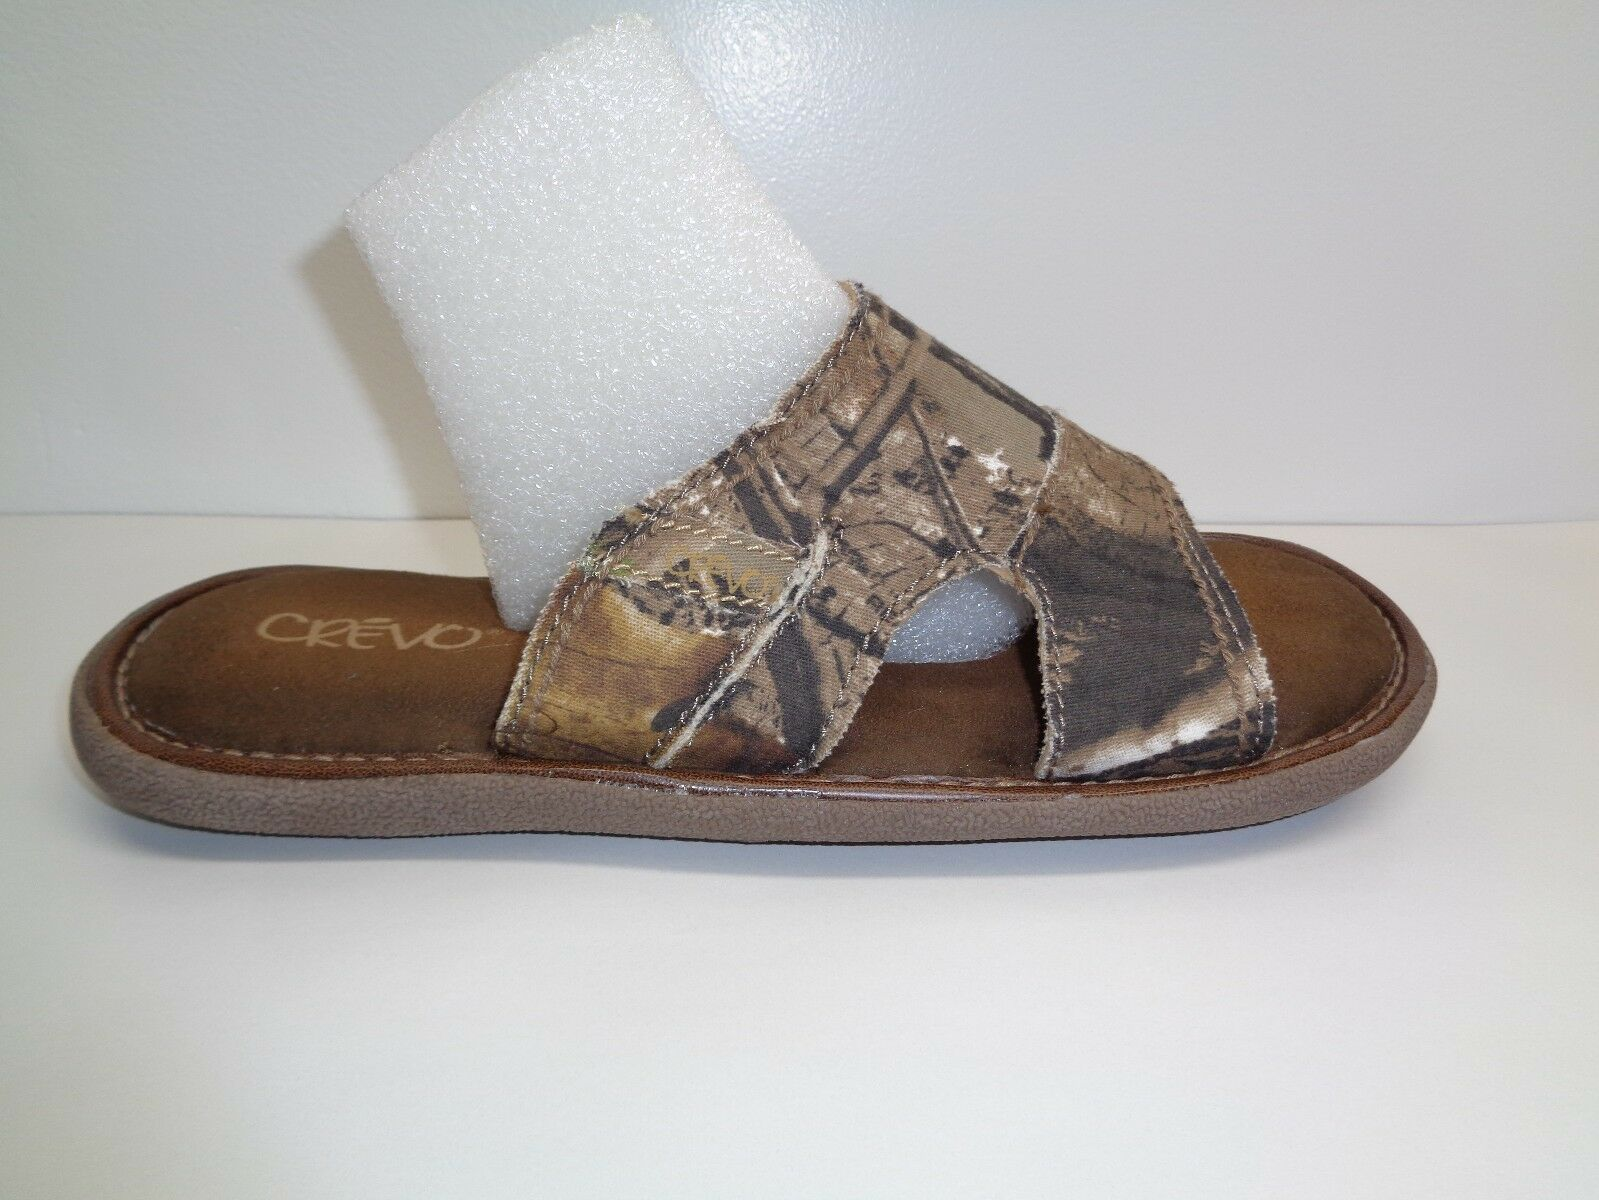 Crevo Talla 8 BAJA REALTREE Real Tree Fabric Slides Sandals New Mens zapatos